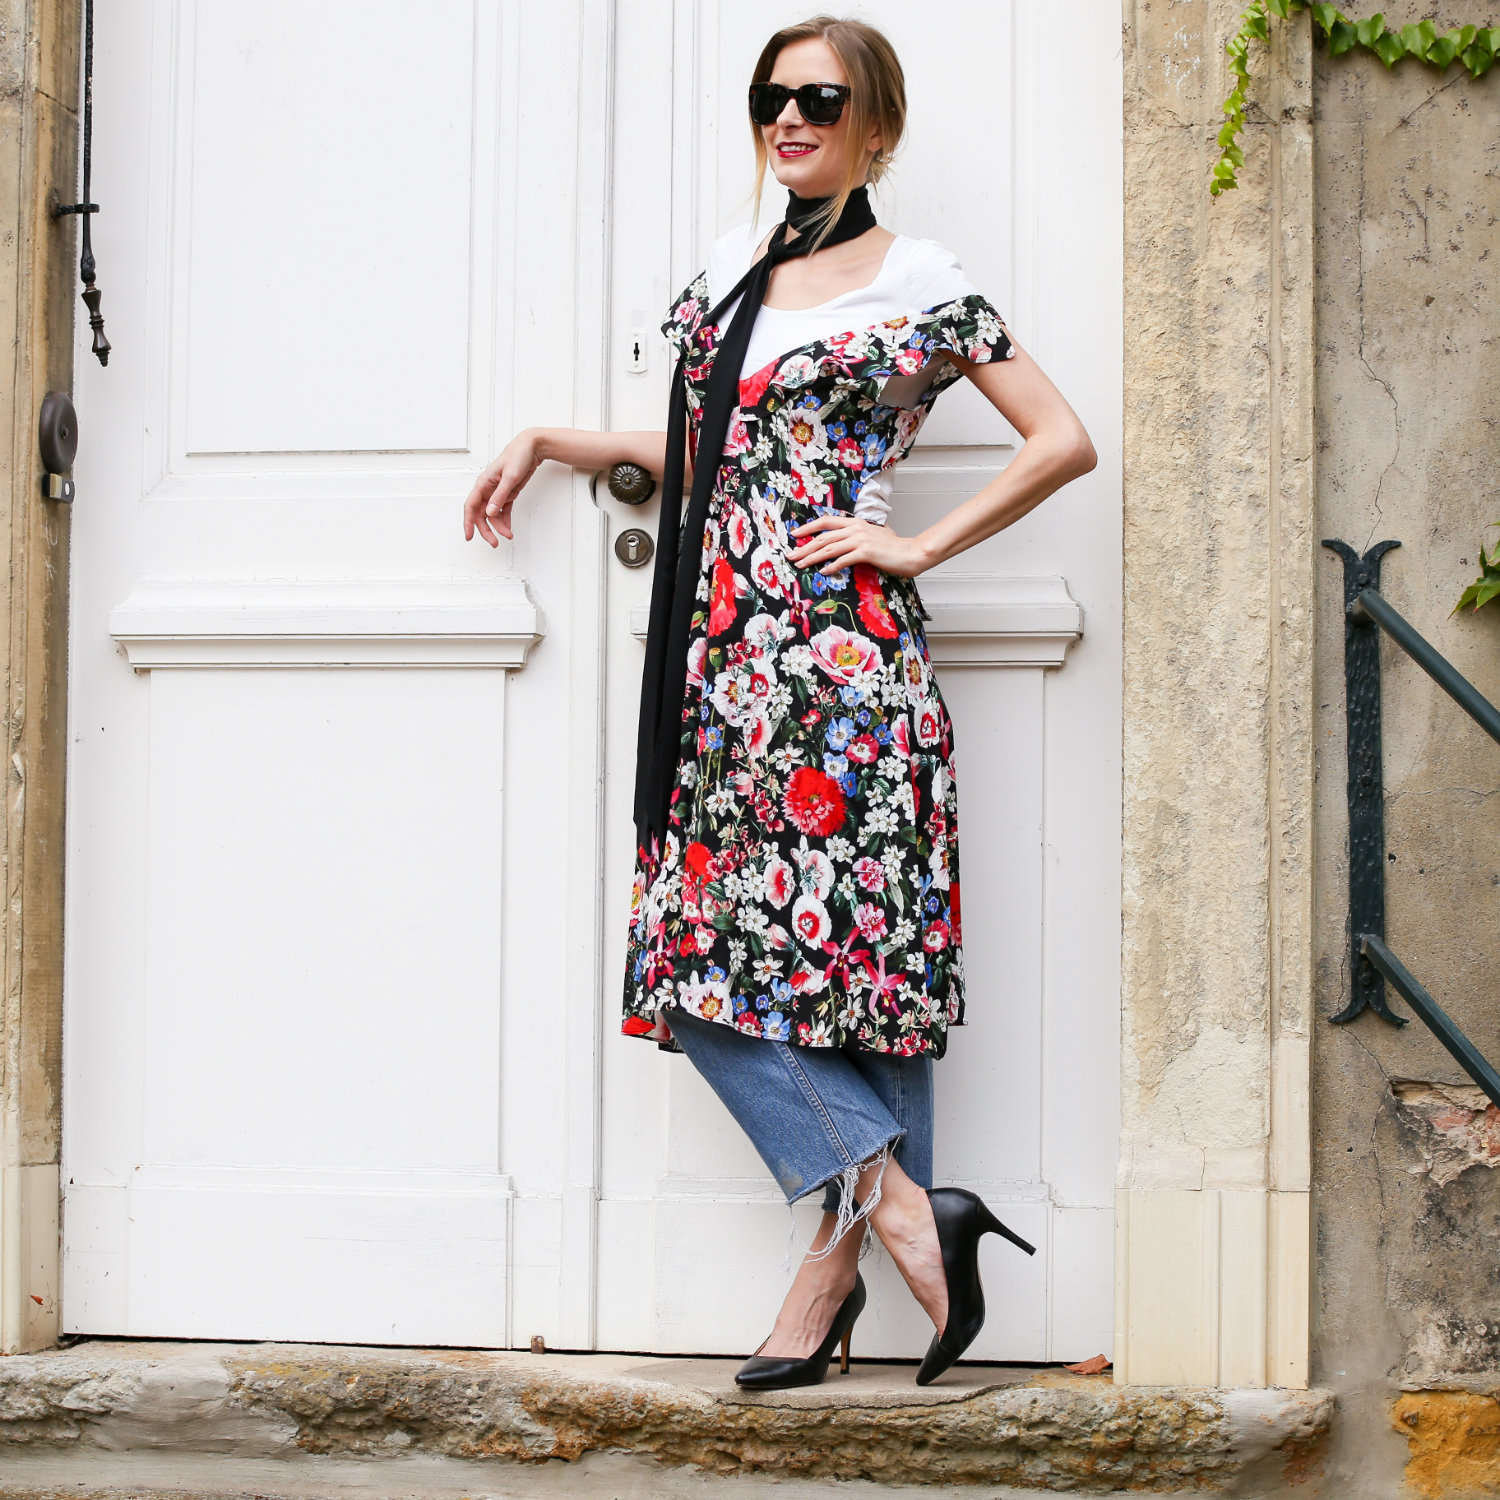 MOD-by-Monique-Looks-Millefleurs-Flower-Power-Dress-22-pix